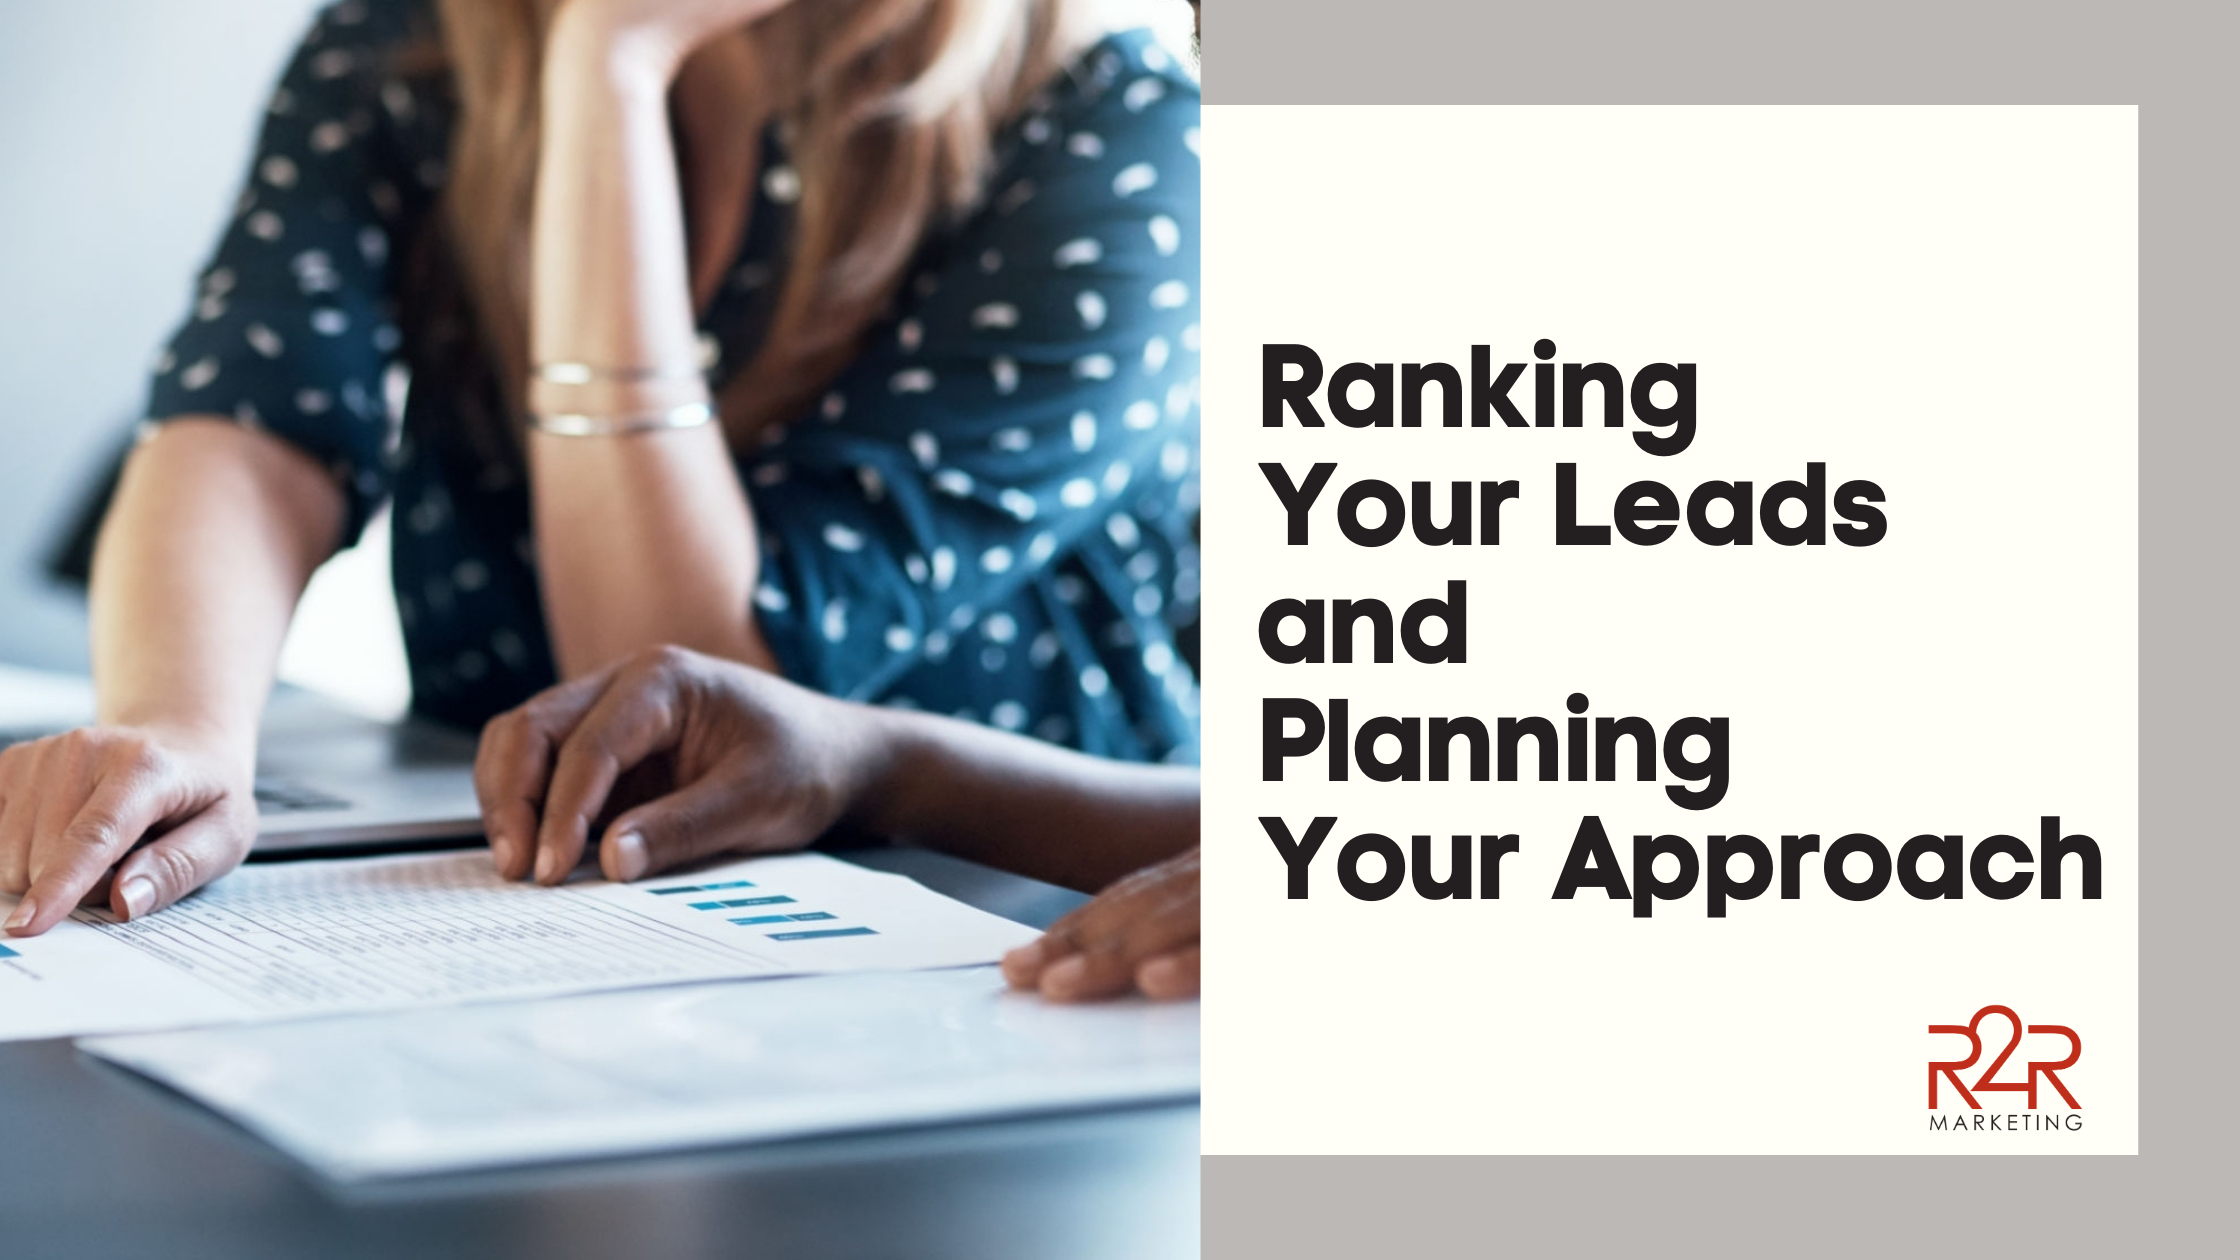 Ranking Your Leads and Planning Your Approach